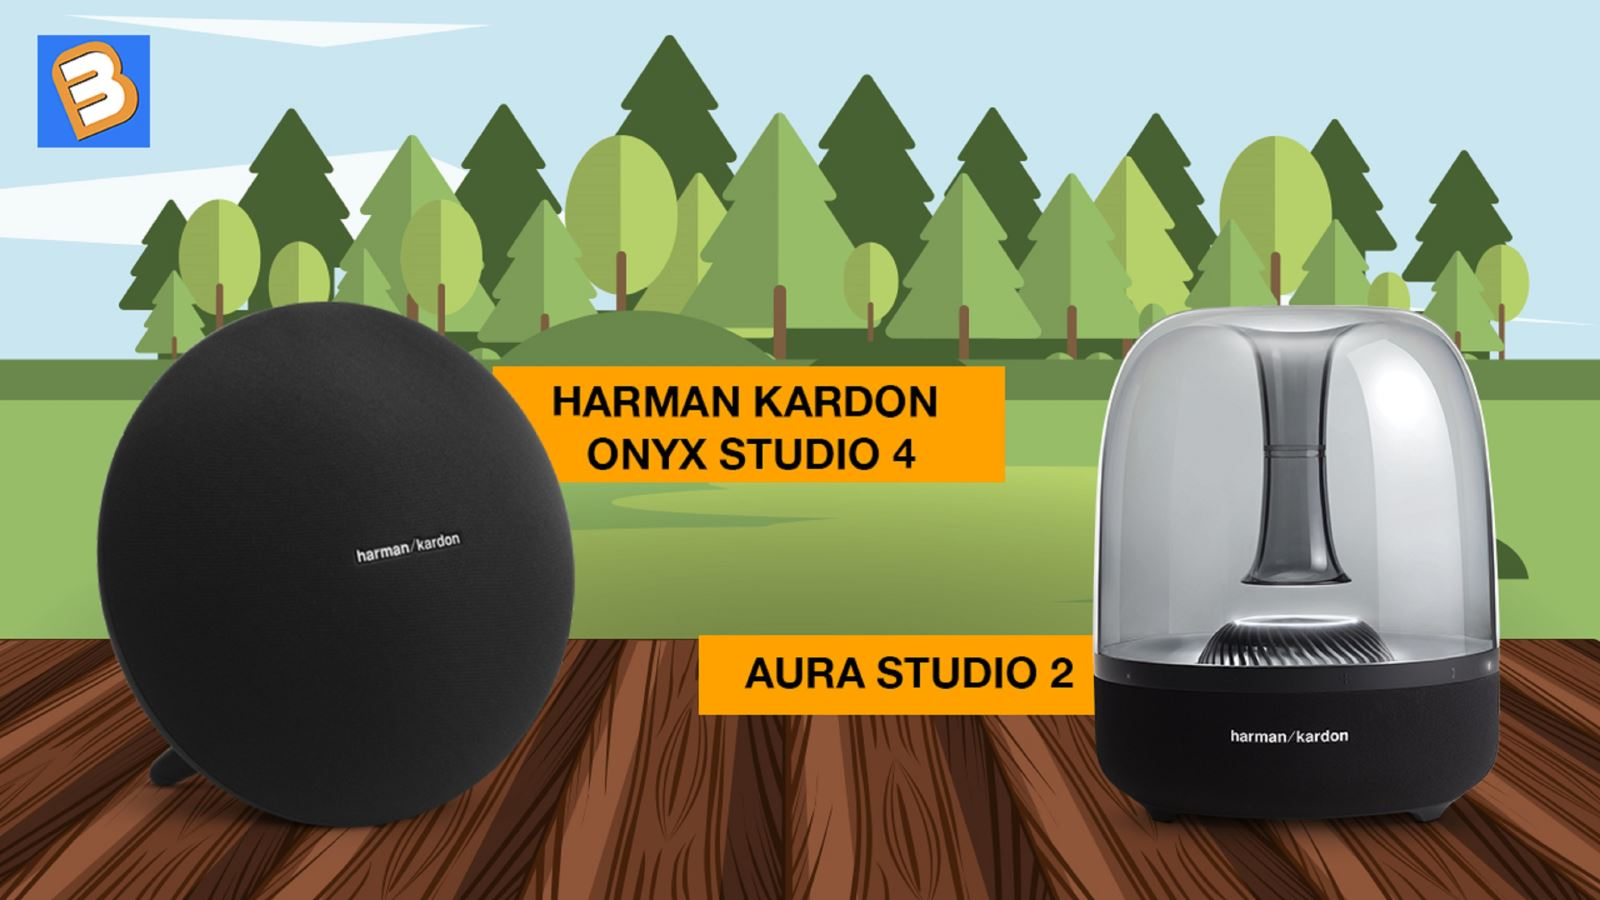 So sánh Harman Kardon Onyx Studio 4 và Aura Studio 2